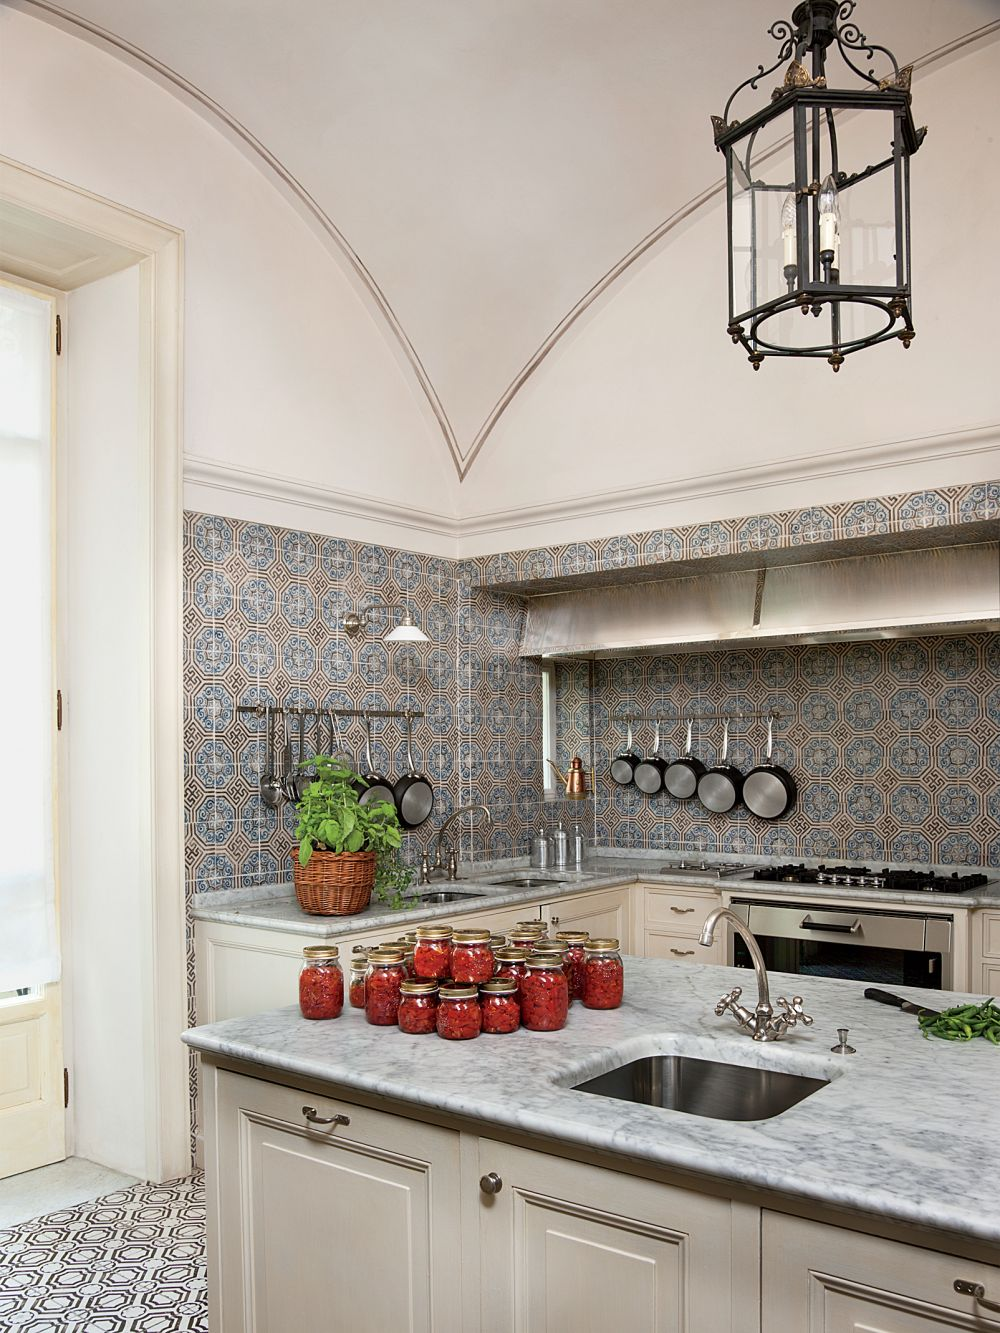 traditional-kitchen-studio-peregalli-naples-italy-201112-2_1000.jpg